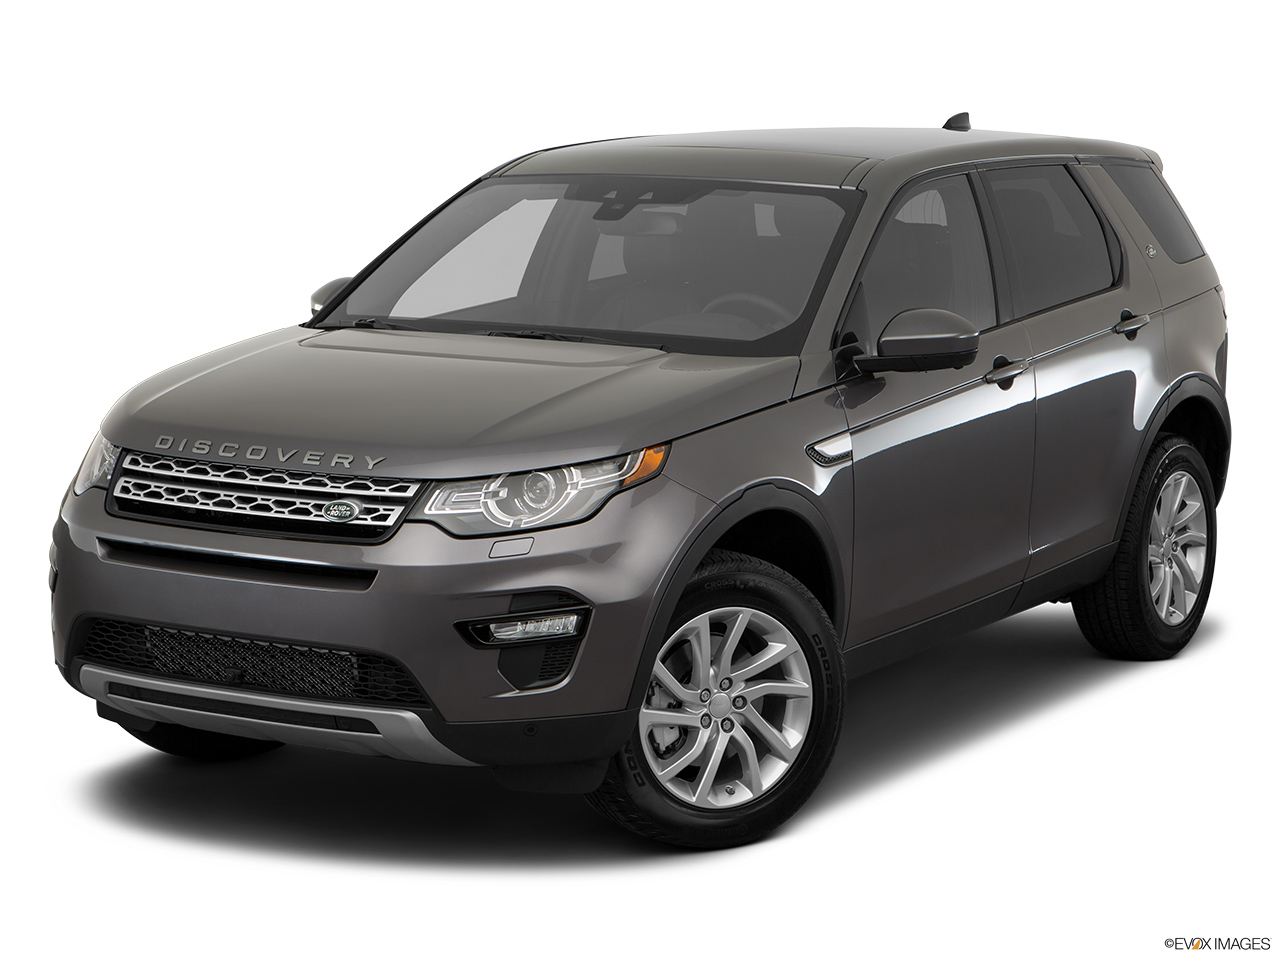 2017 land rover discovery sport prices in uae gulf specs. Black Bedroom Furniture Sets. Home Design Ideas